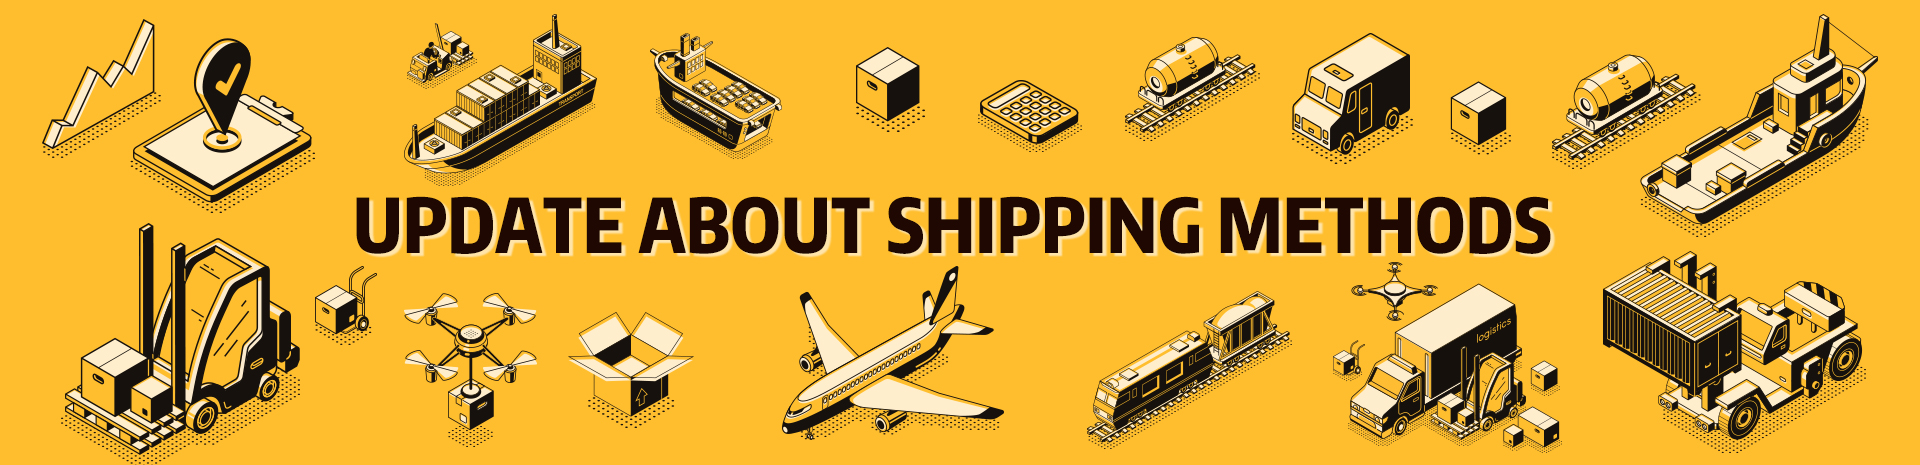 Update About Shipping Methods Banner